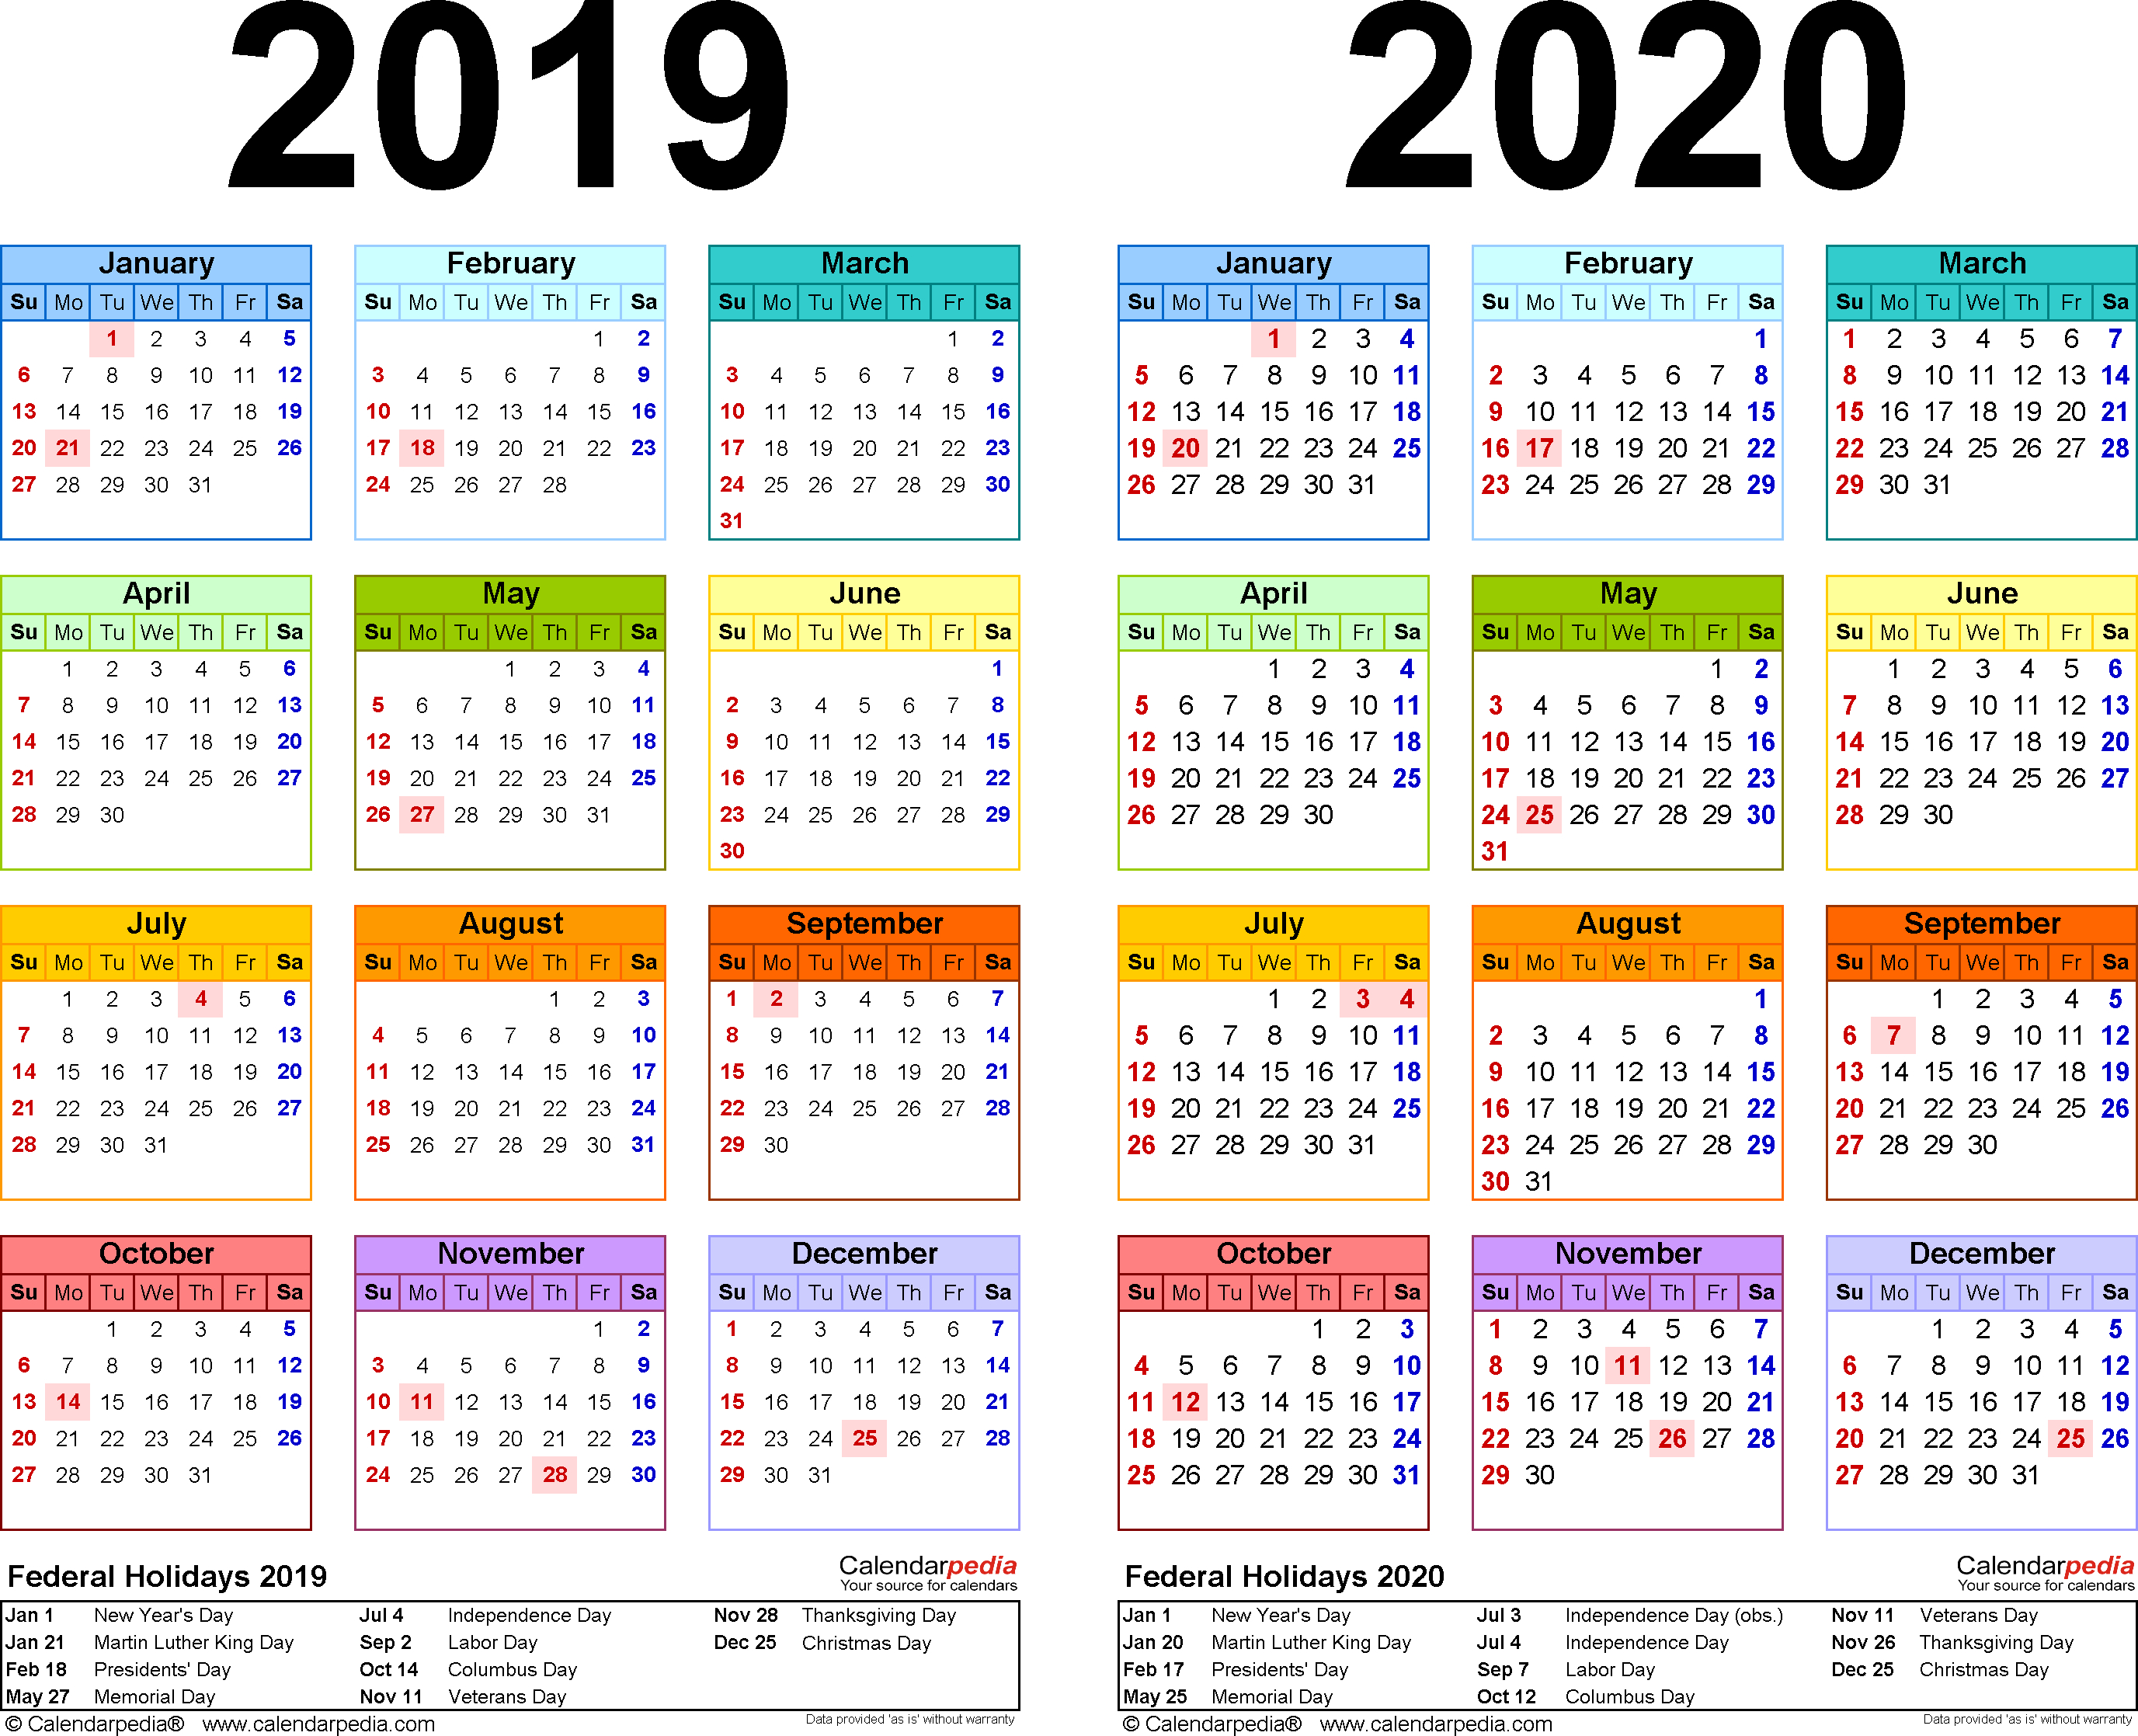 2019-2020 Calendar - Free Printable Two-Year Word Calendars for Calendar 2019 2020 With Boxes